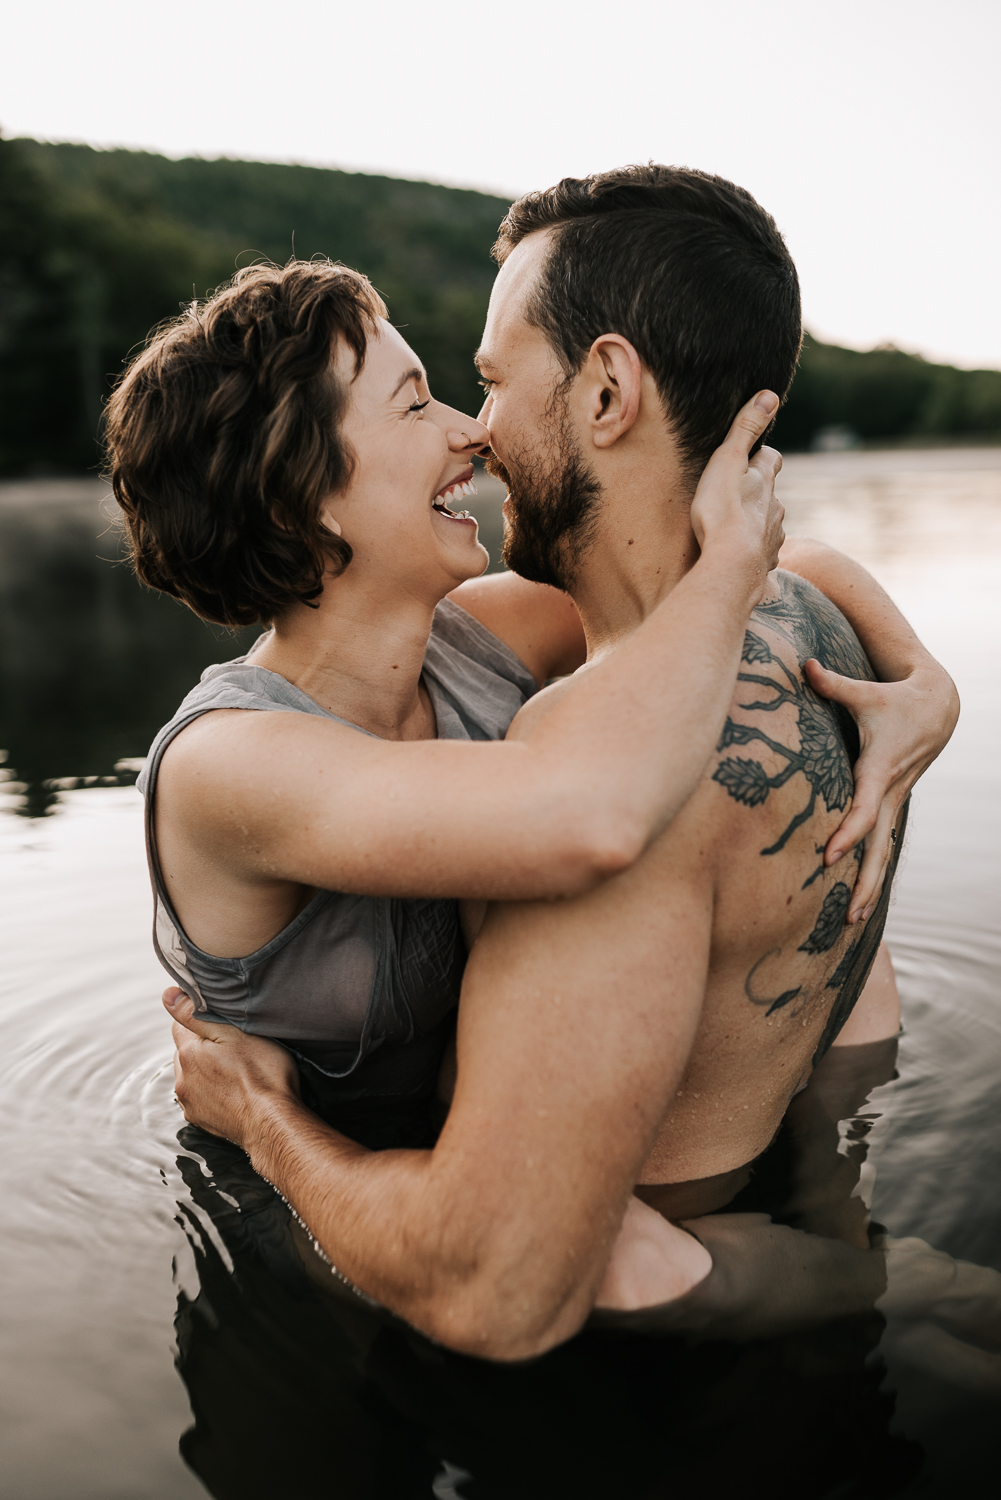 Emotive photography| Morgan Ellis | Emotive images for couples and families around the world. | Philadelphia, New Jersey, Maine, South Carolina, North Carolina, Oklahoma, Massachusetts and Beyond | #emotiveimages #engagementphotos #couplesphotographer #emotionalphotos #familyphotos #emotionalimages